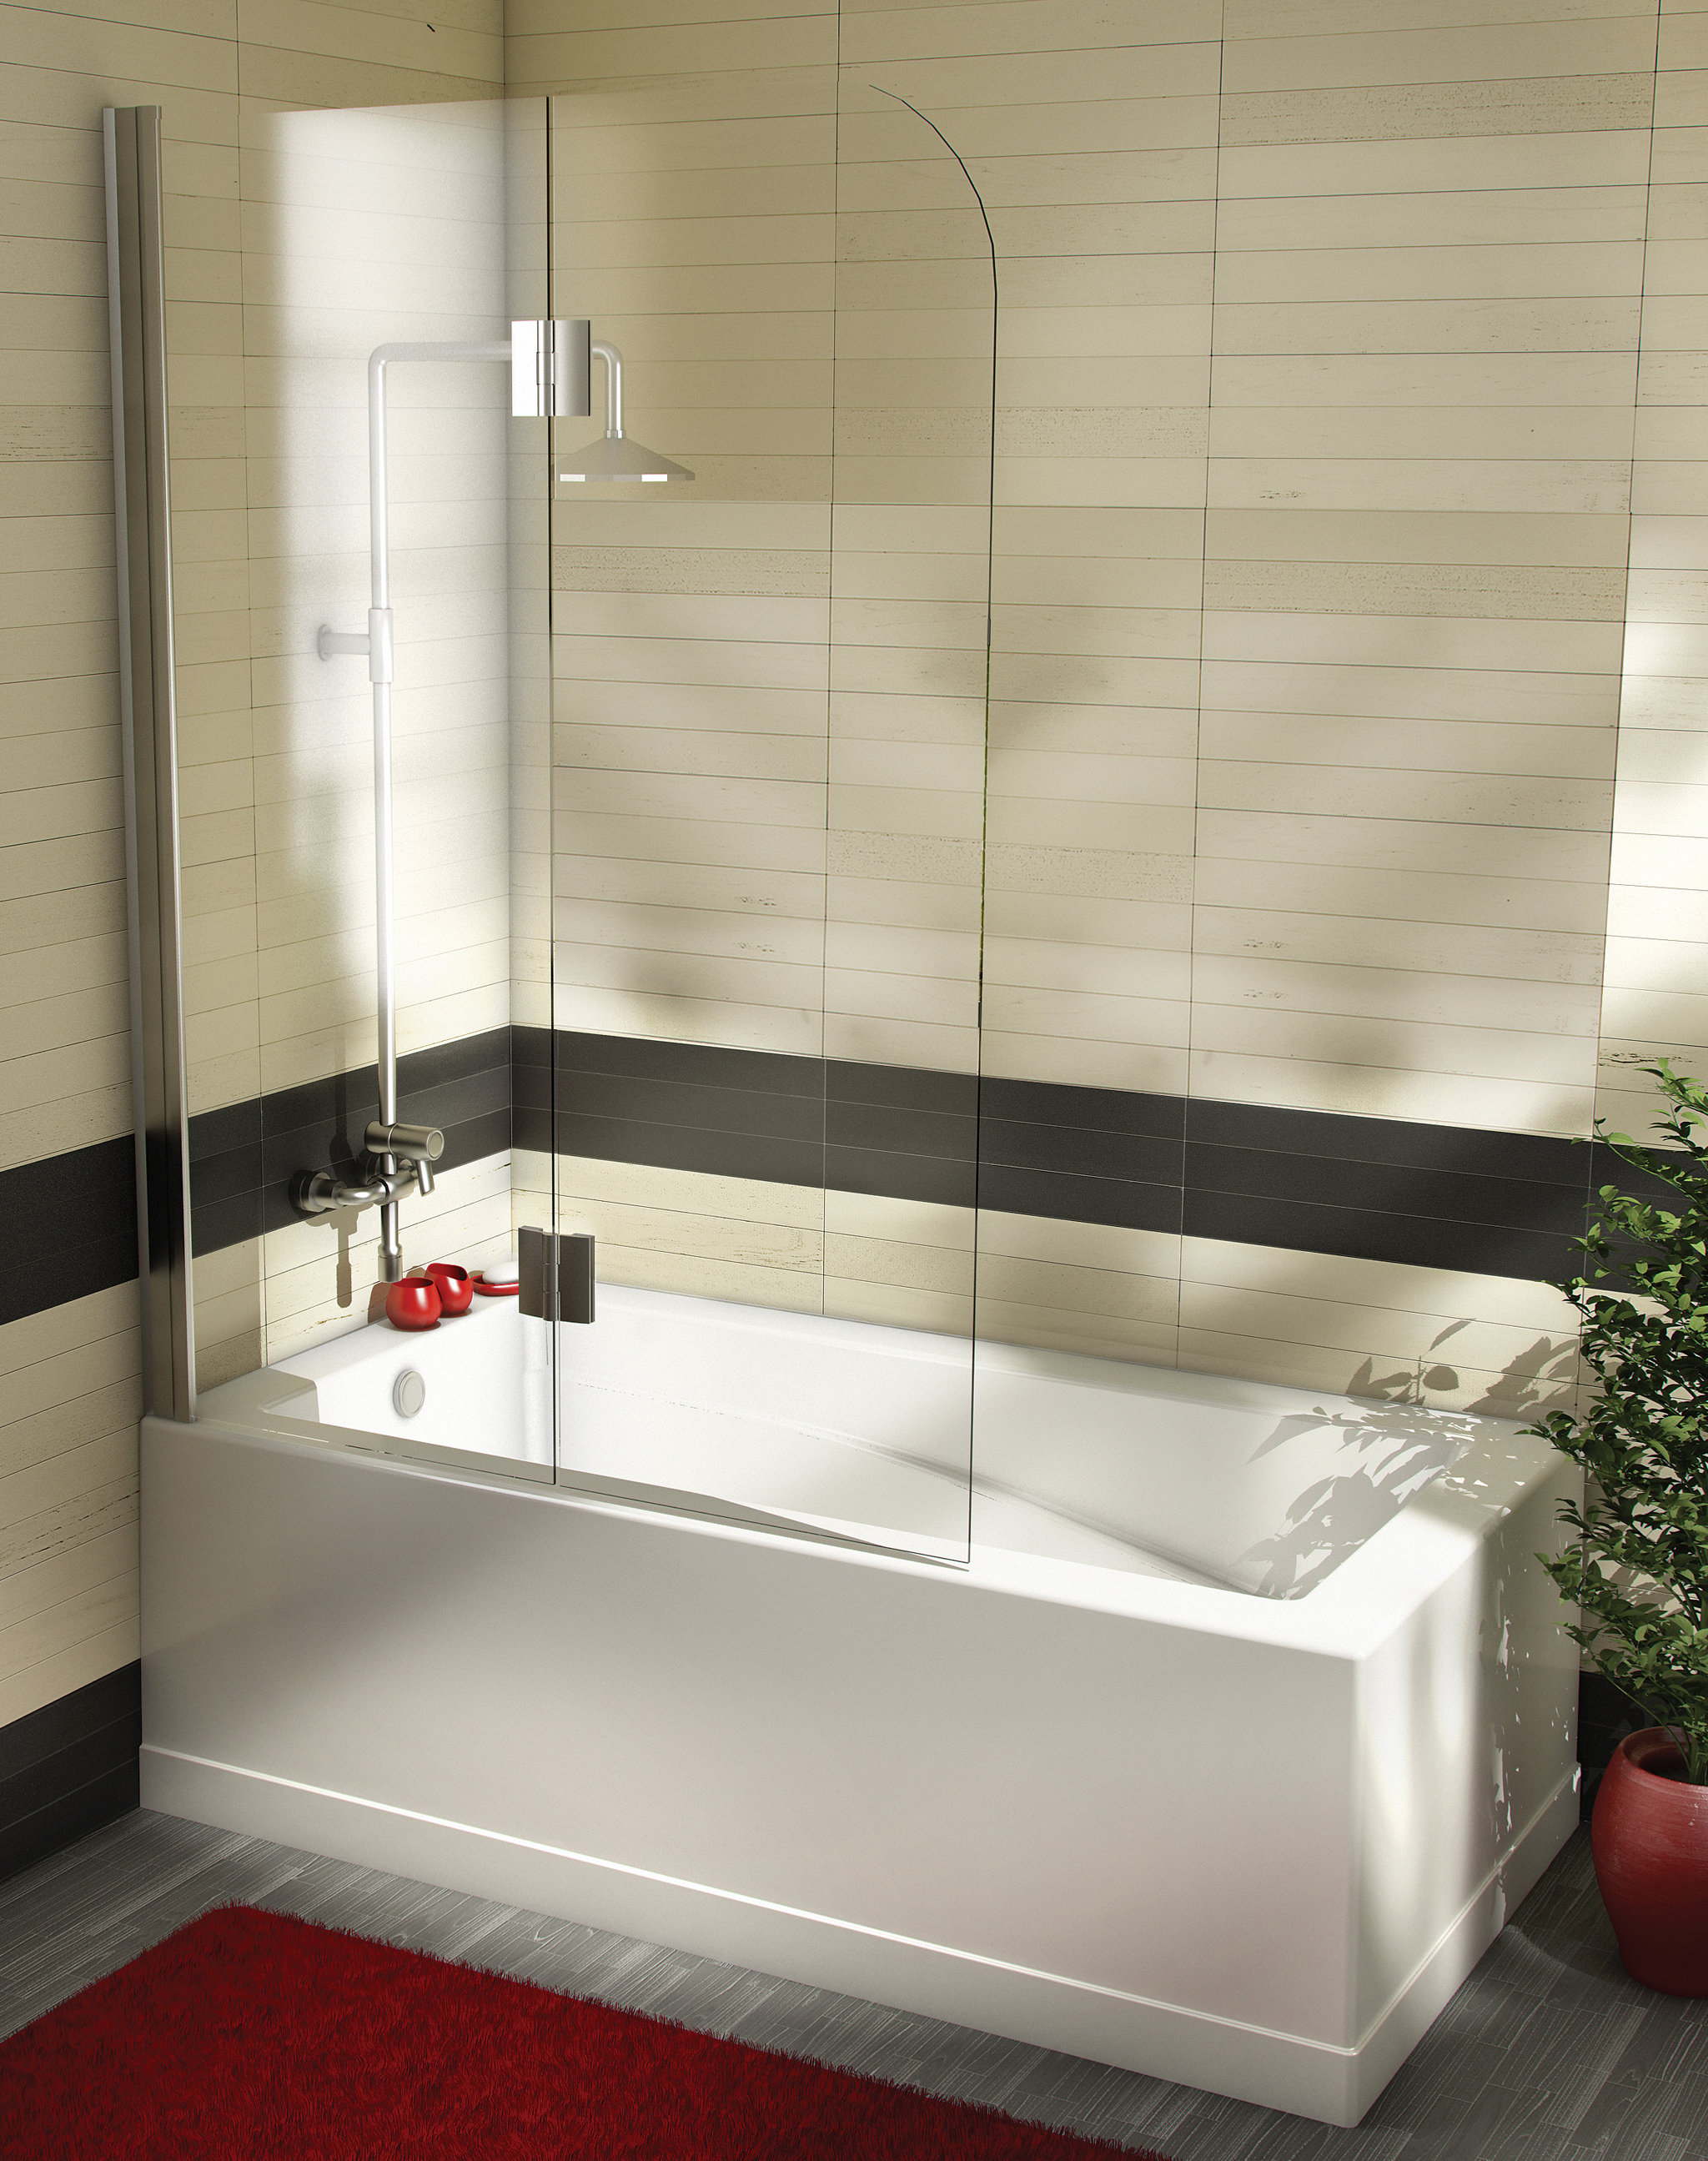 baignoire douche avec porte. Black Bedroom Furniture Sets. Home Design Ideas